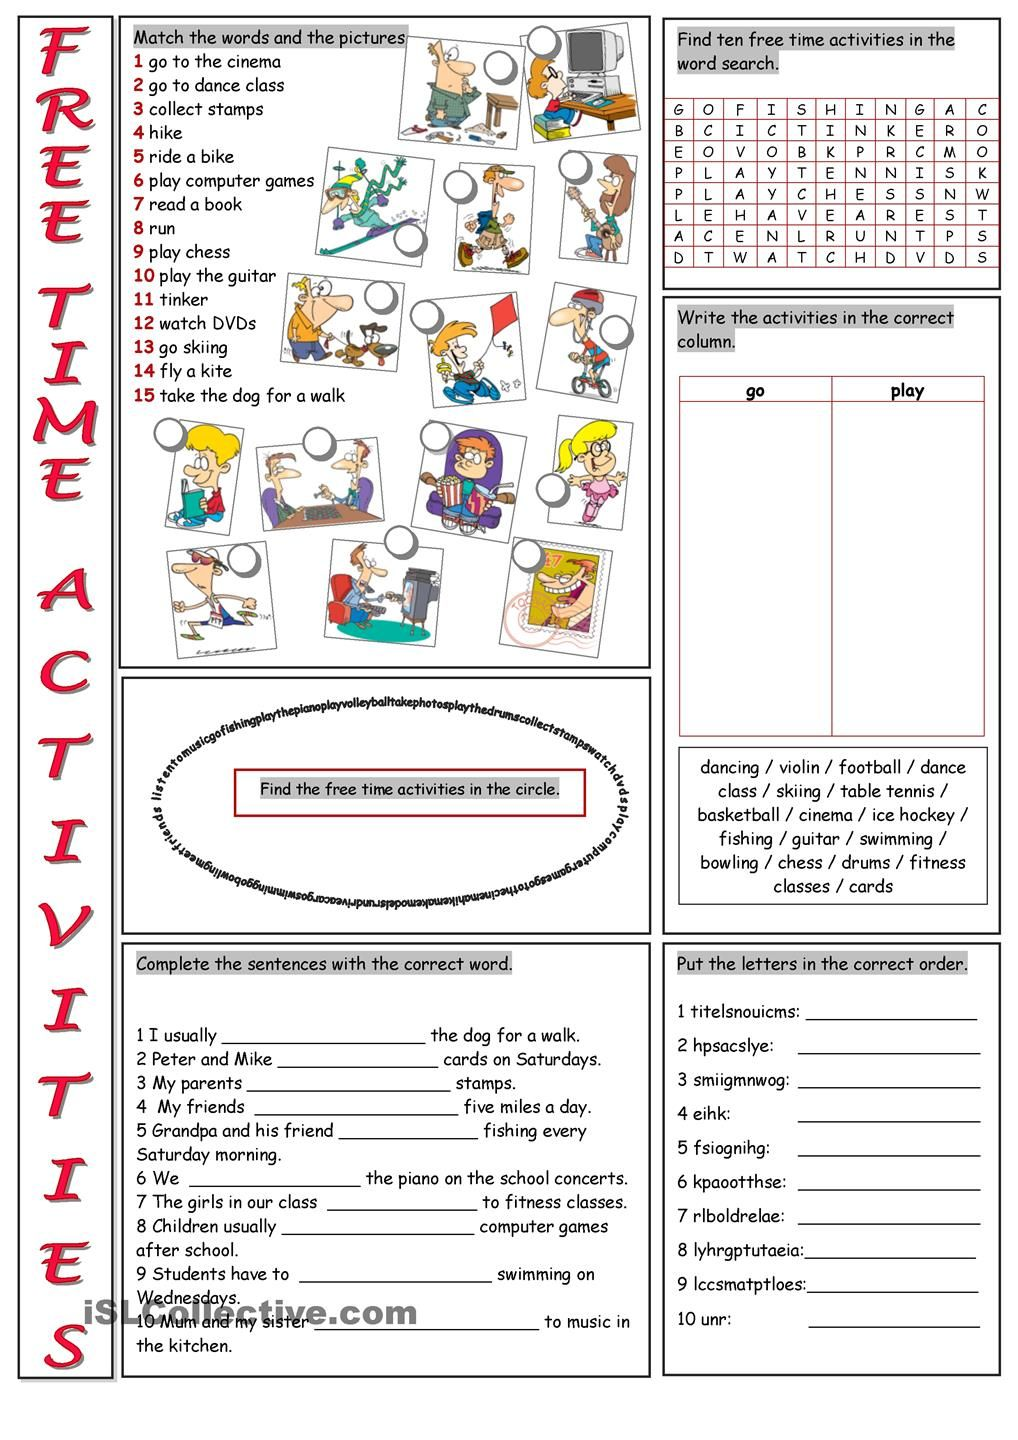 Free Time Activities Vocabulary Exercises | English ...